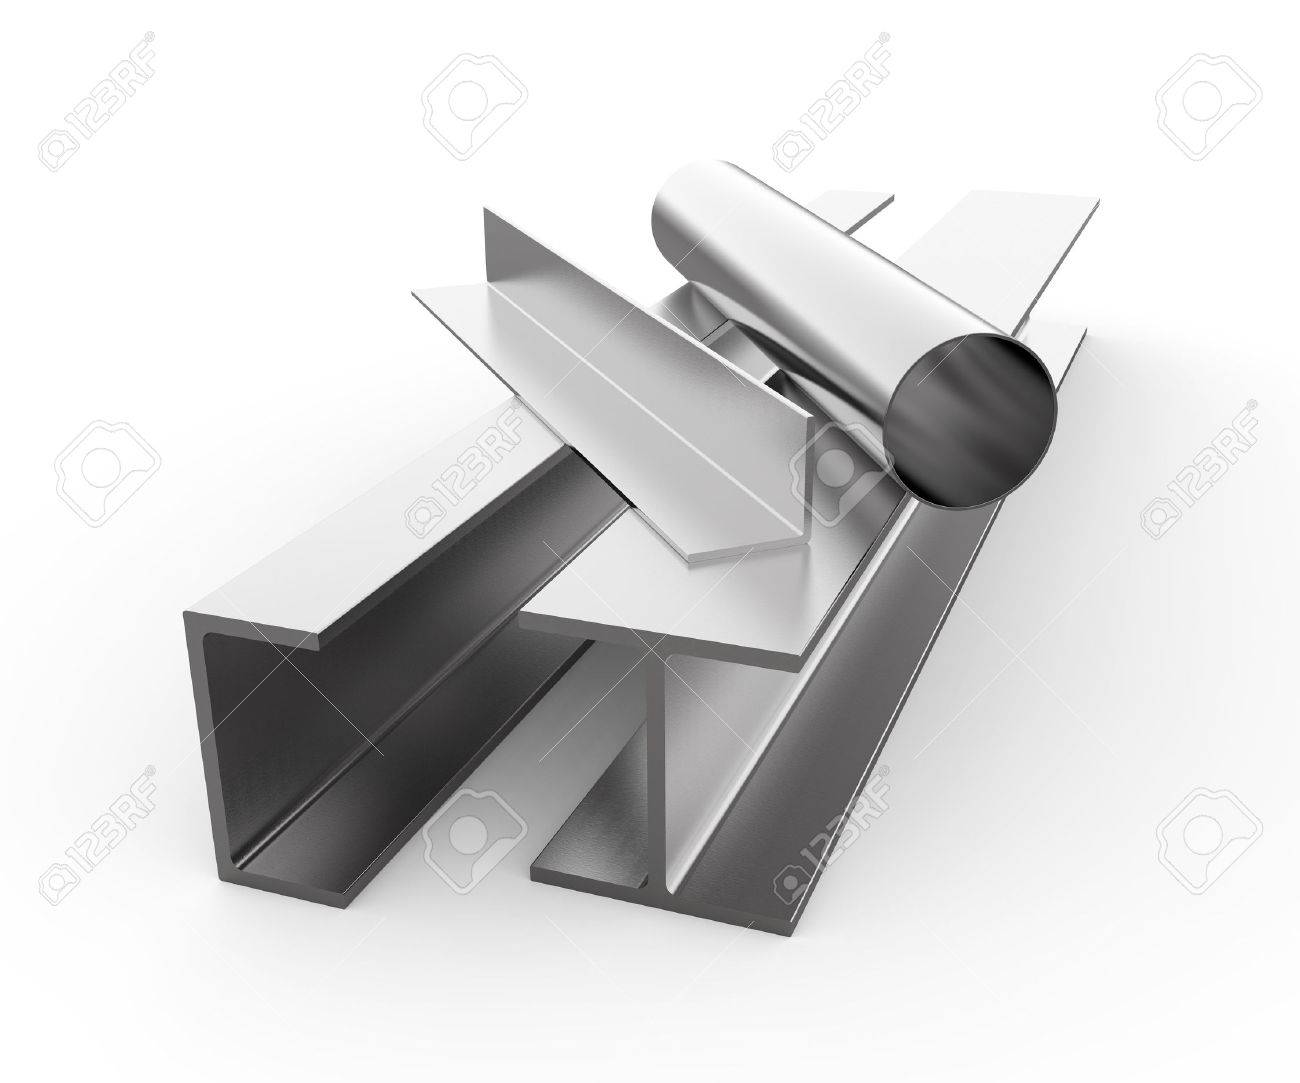 Rolled metal products on white background - 25607477